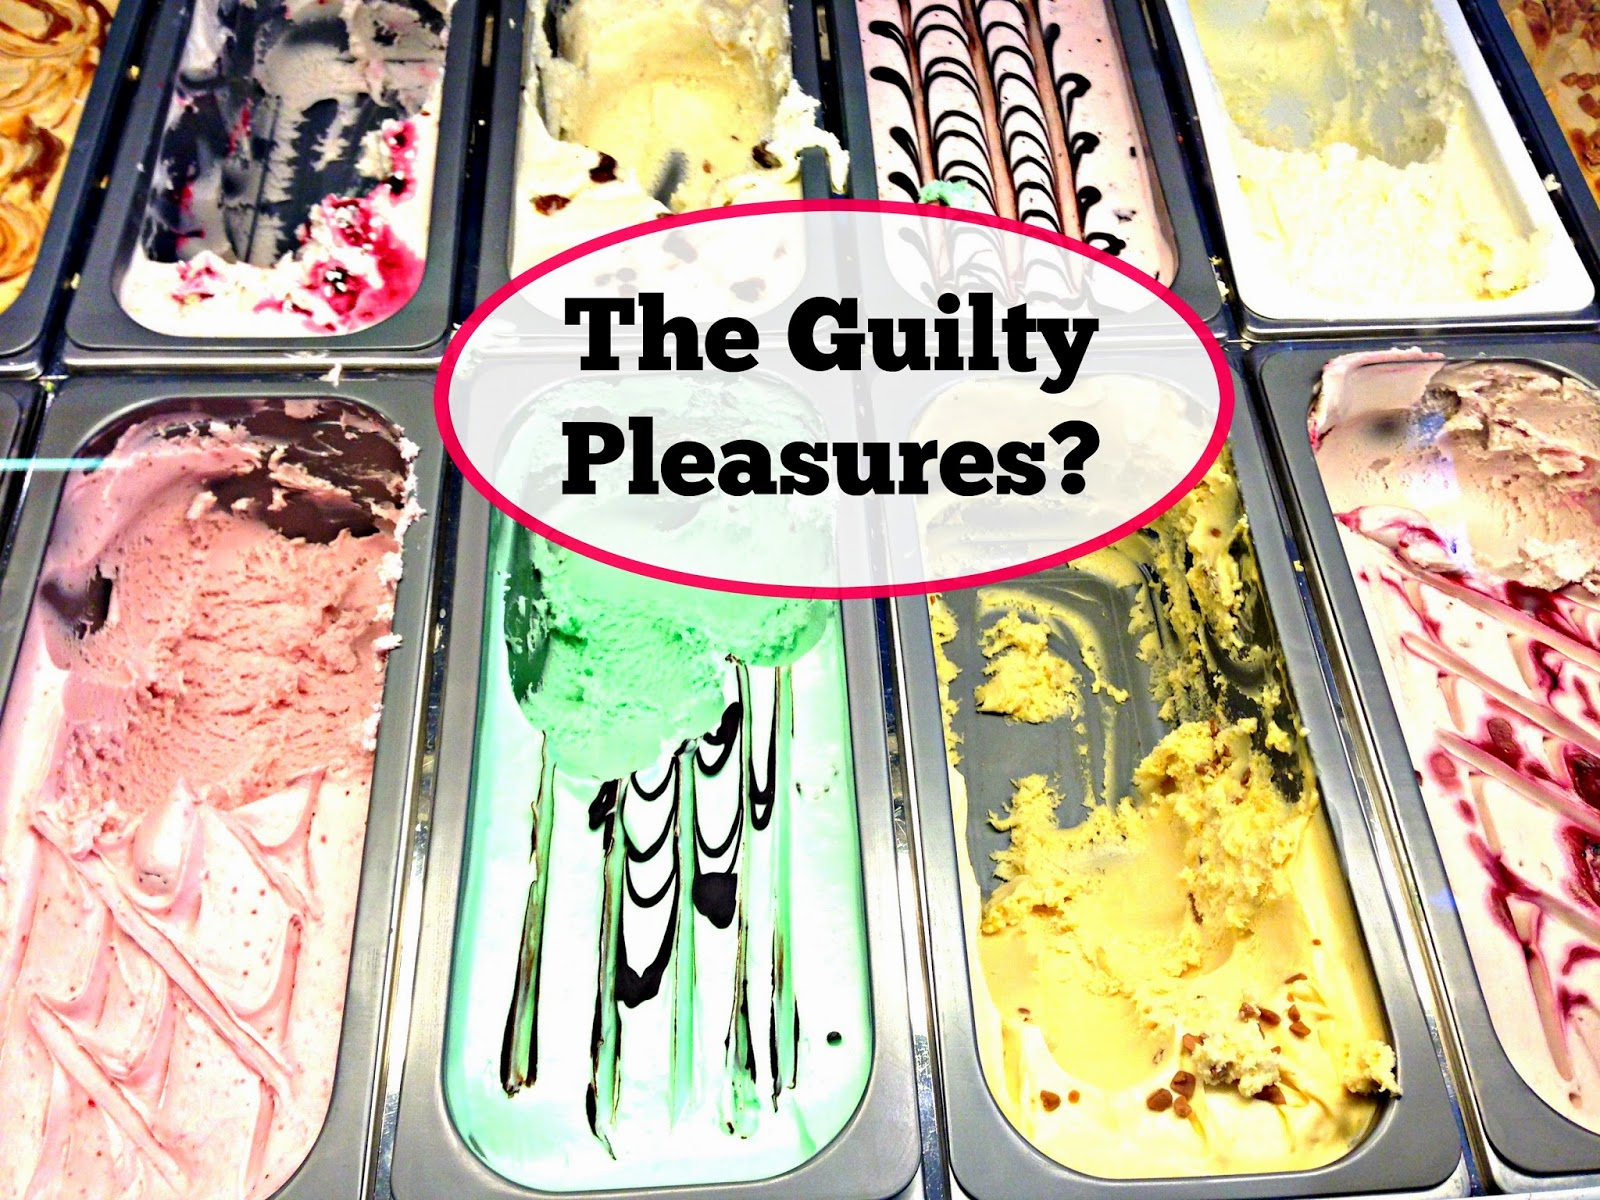 The Guilty Pleasures?